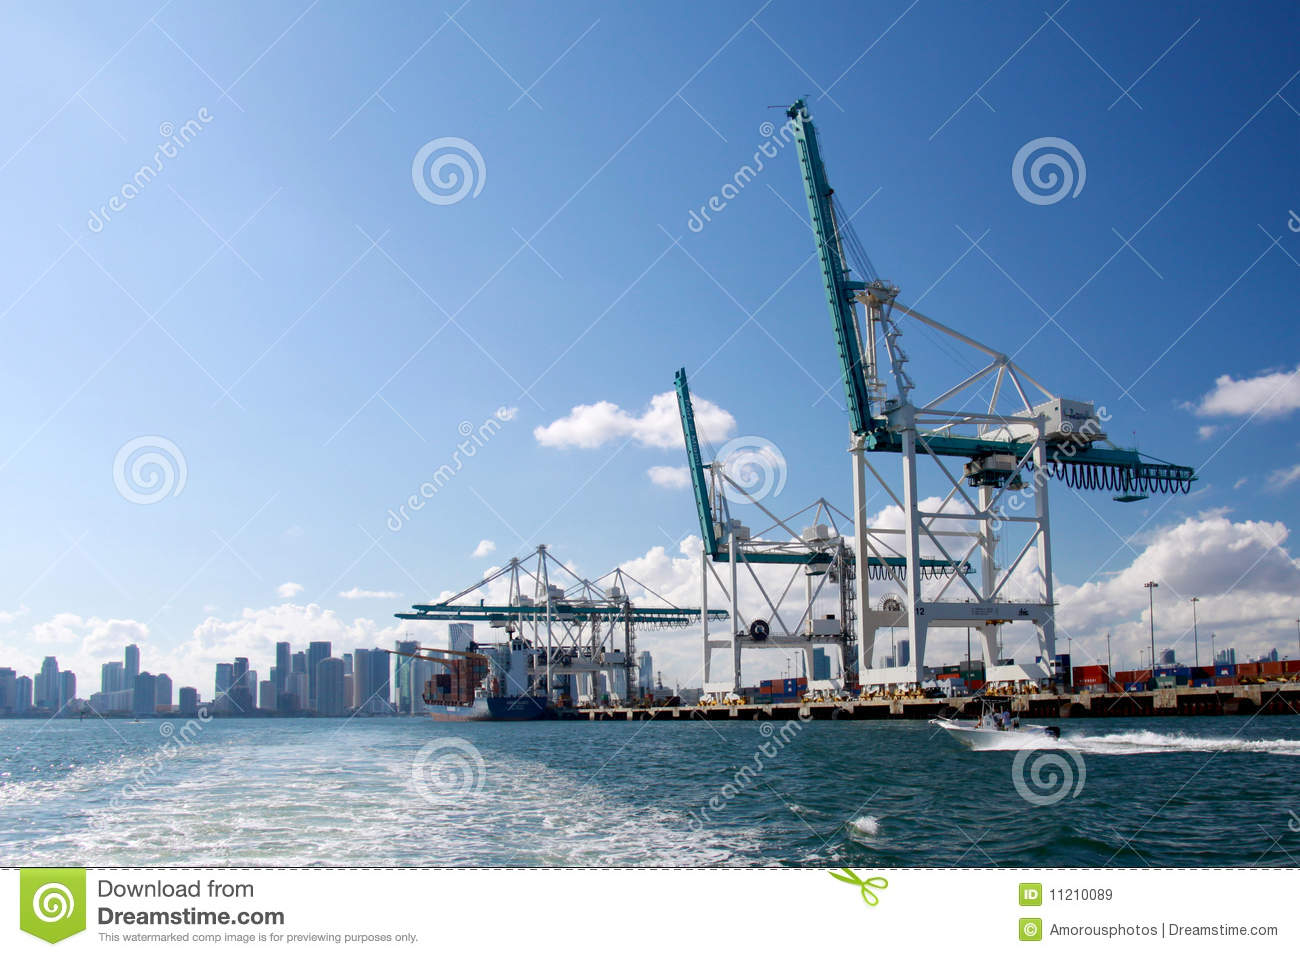 Blue Water Shipping is a small business with up to 4 employees. Categorized under freight forwarding, Blue Water Shipping has an annual revenue of $ to 5 million. Blue Water Shipping is a public business located in Miami, FL.